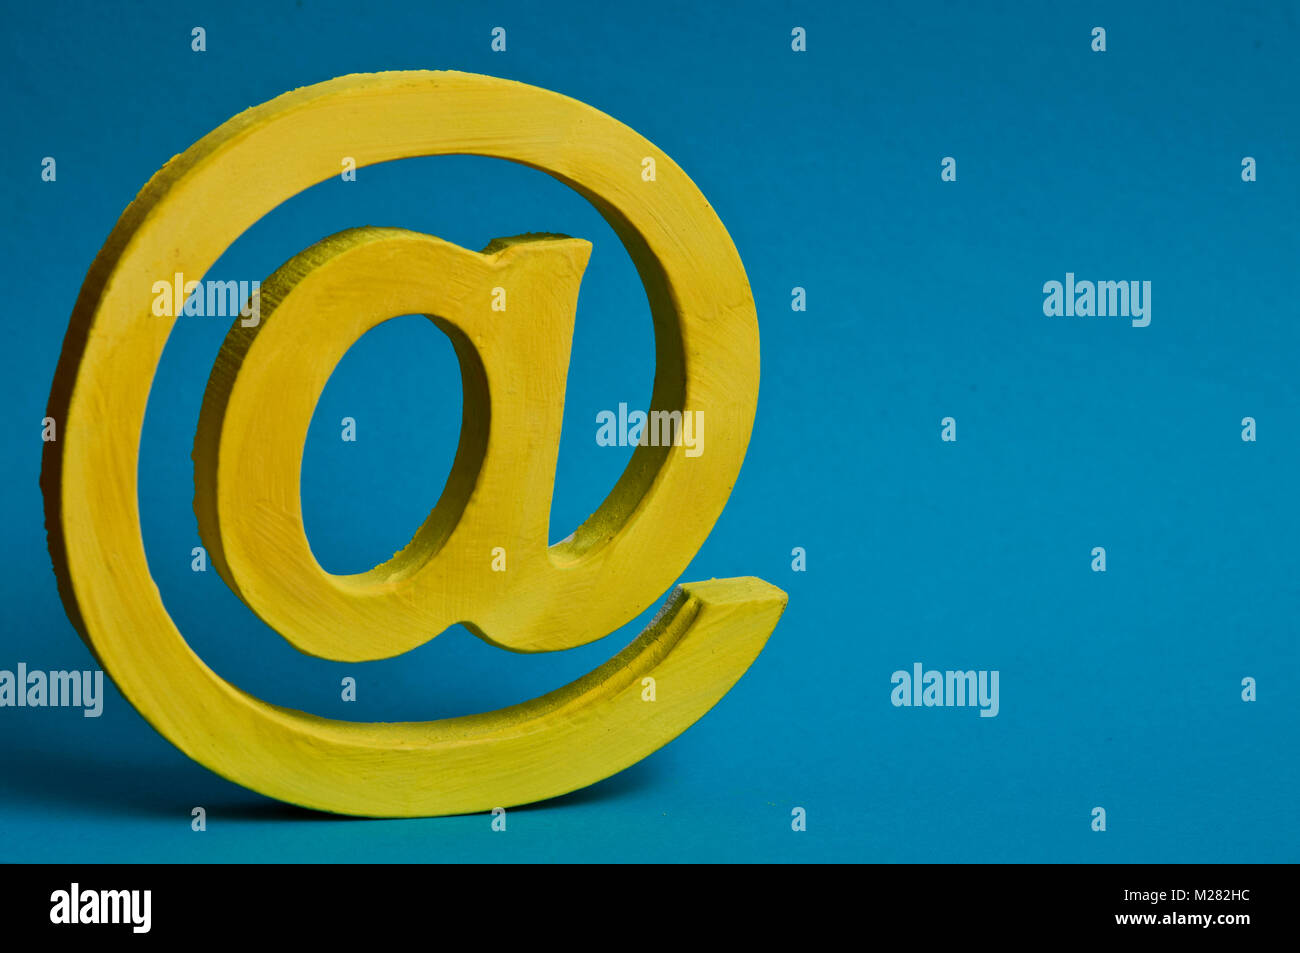 @ sign for email, yellow on blue - Stock Image